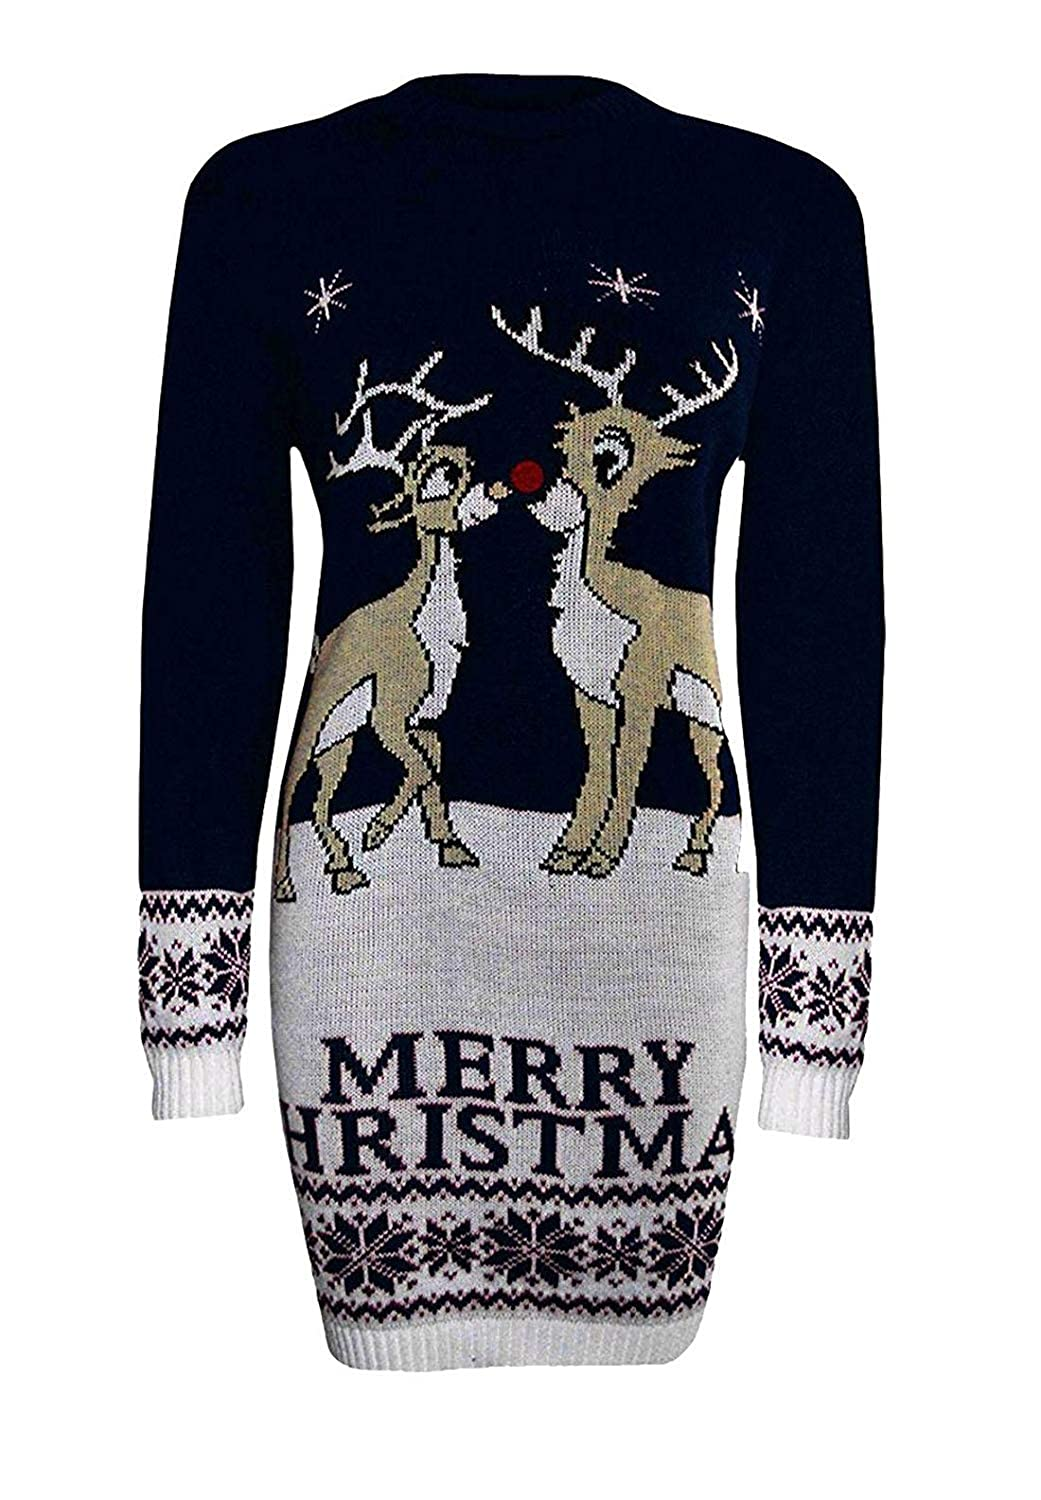 GirlzWalk Women Two Reindeer Merry Christmas Knitted Sweater Ladies Novelty Xmas Party Midi Tunic Jumper Dress